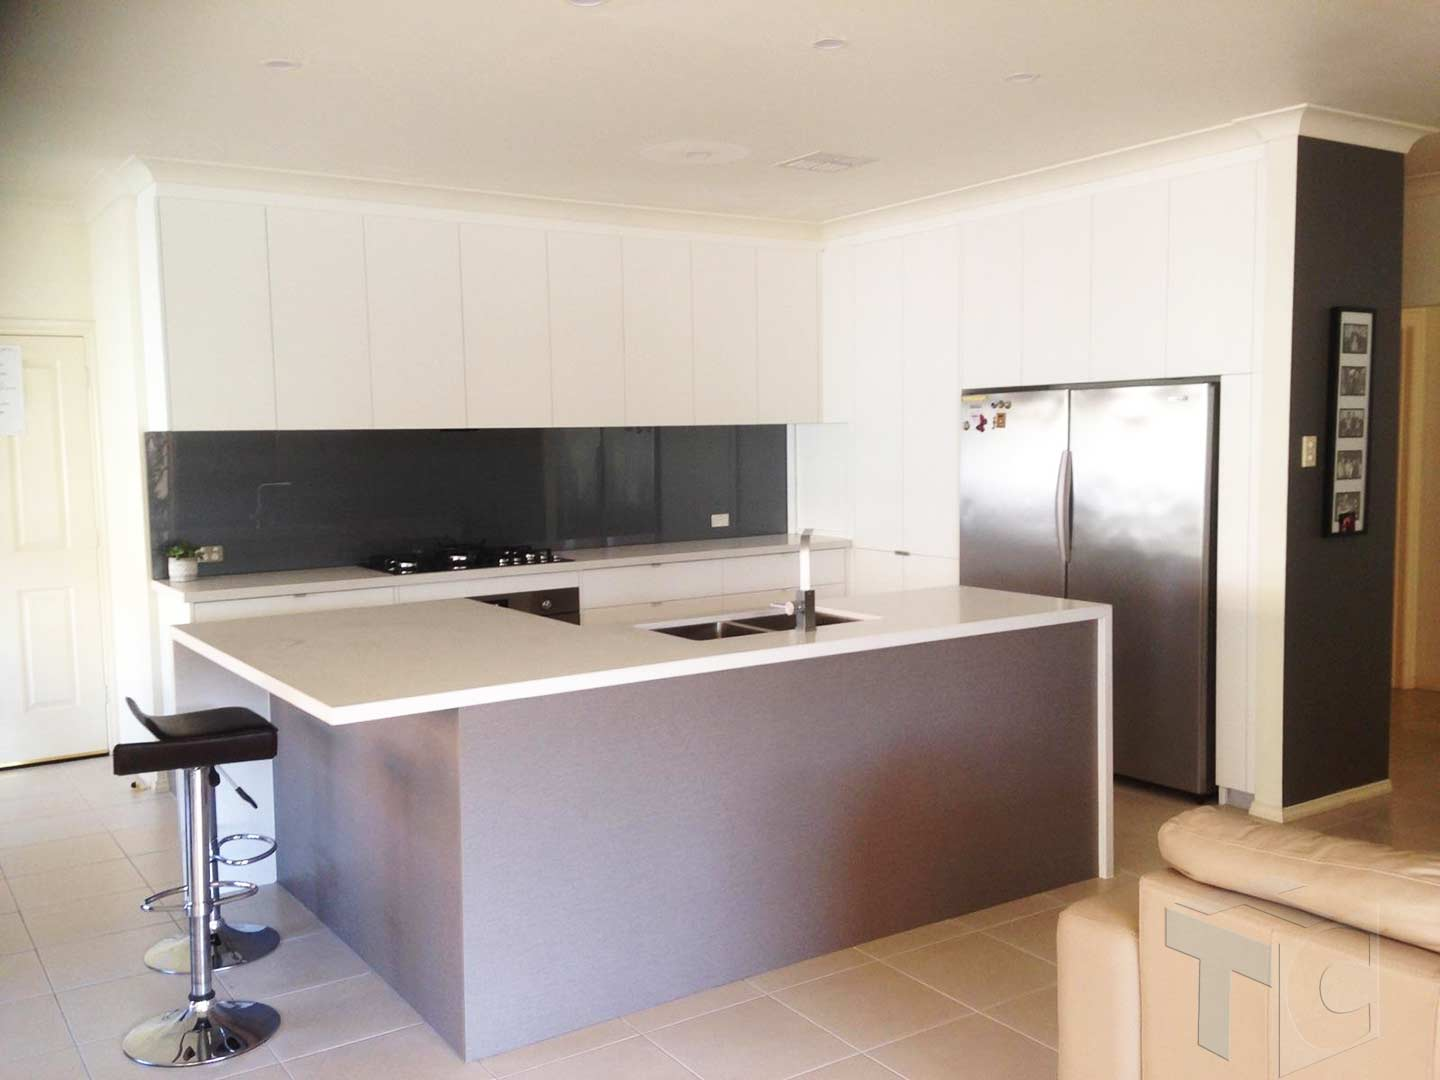 kitchen-mawson-lakes-adelaide-02